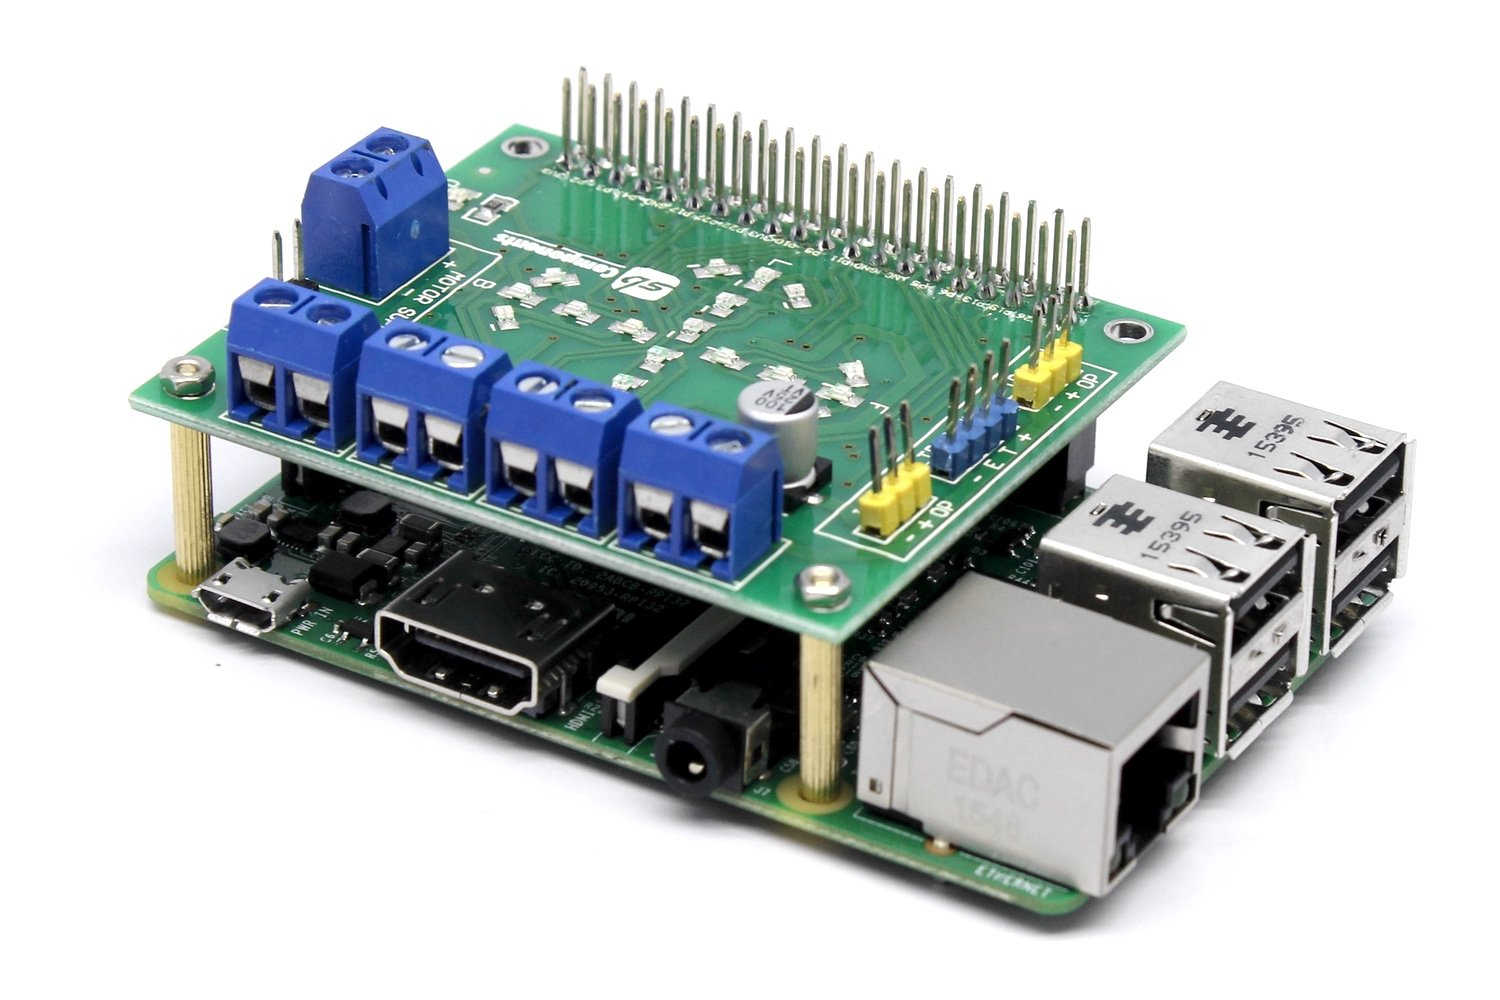 Sb New Motorshield For Raspberry Pi 321 And Zero This Expansion Wiringpi Cpu Usage Board Can Control Up To 4 Motors Or 2 Stepper Motor Ir Sensors A Single Ultrasonic